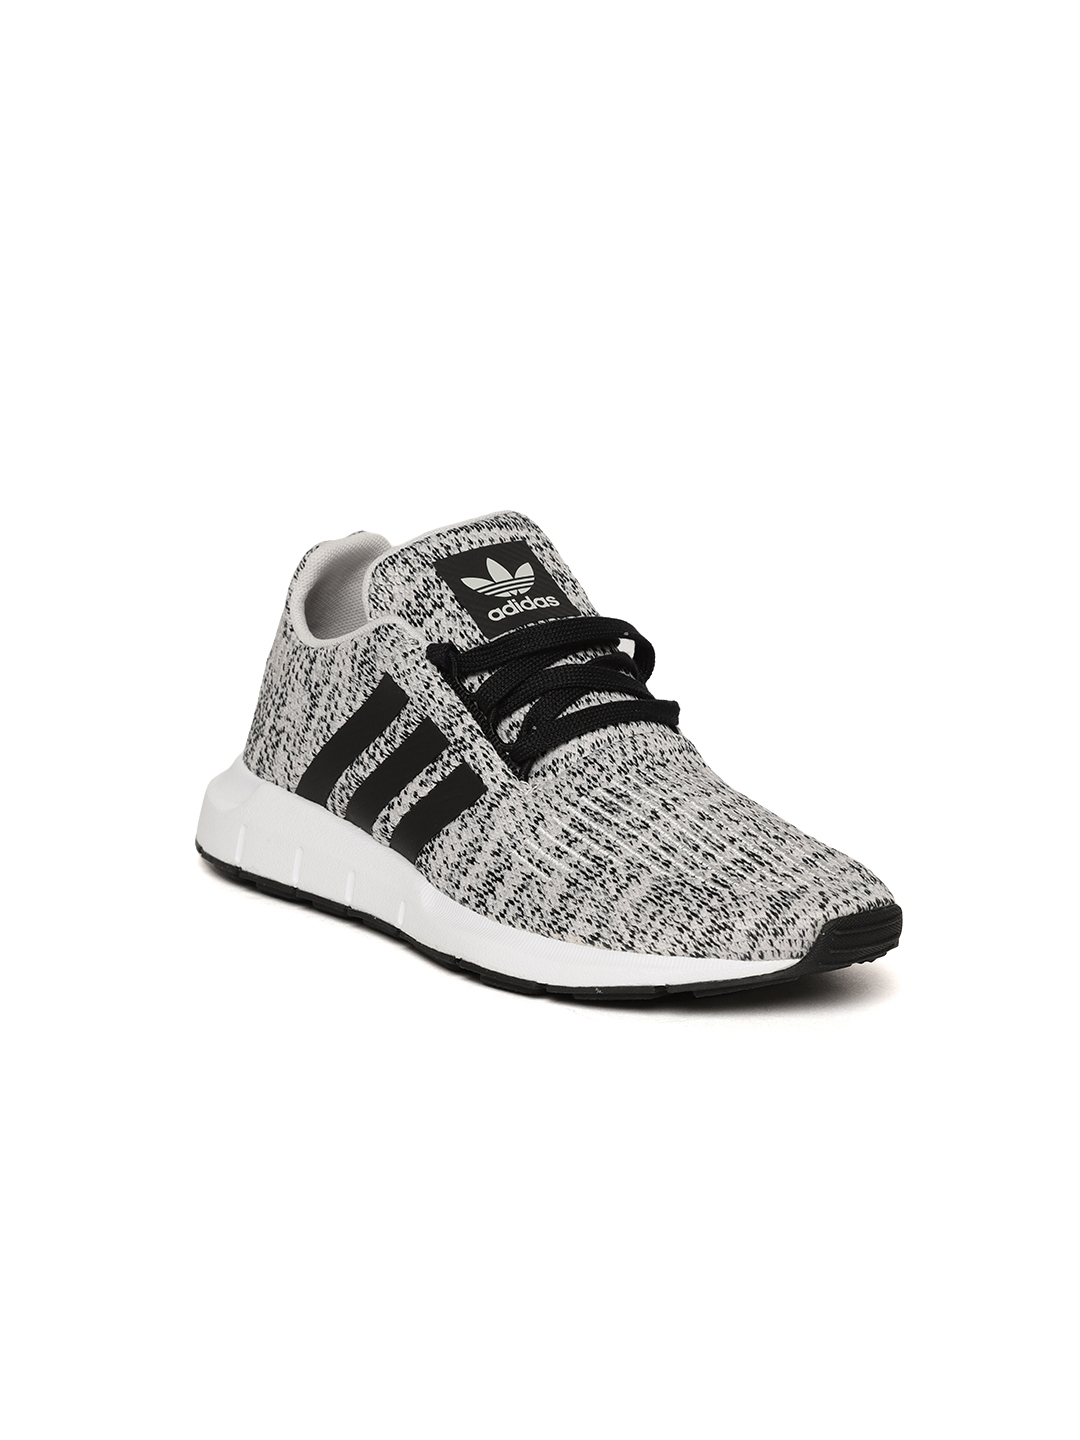 317c7a30f Adidas Originals Kids Grey   Black Swift Run J Patterned Sneakers